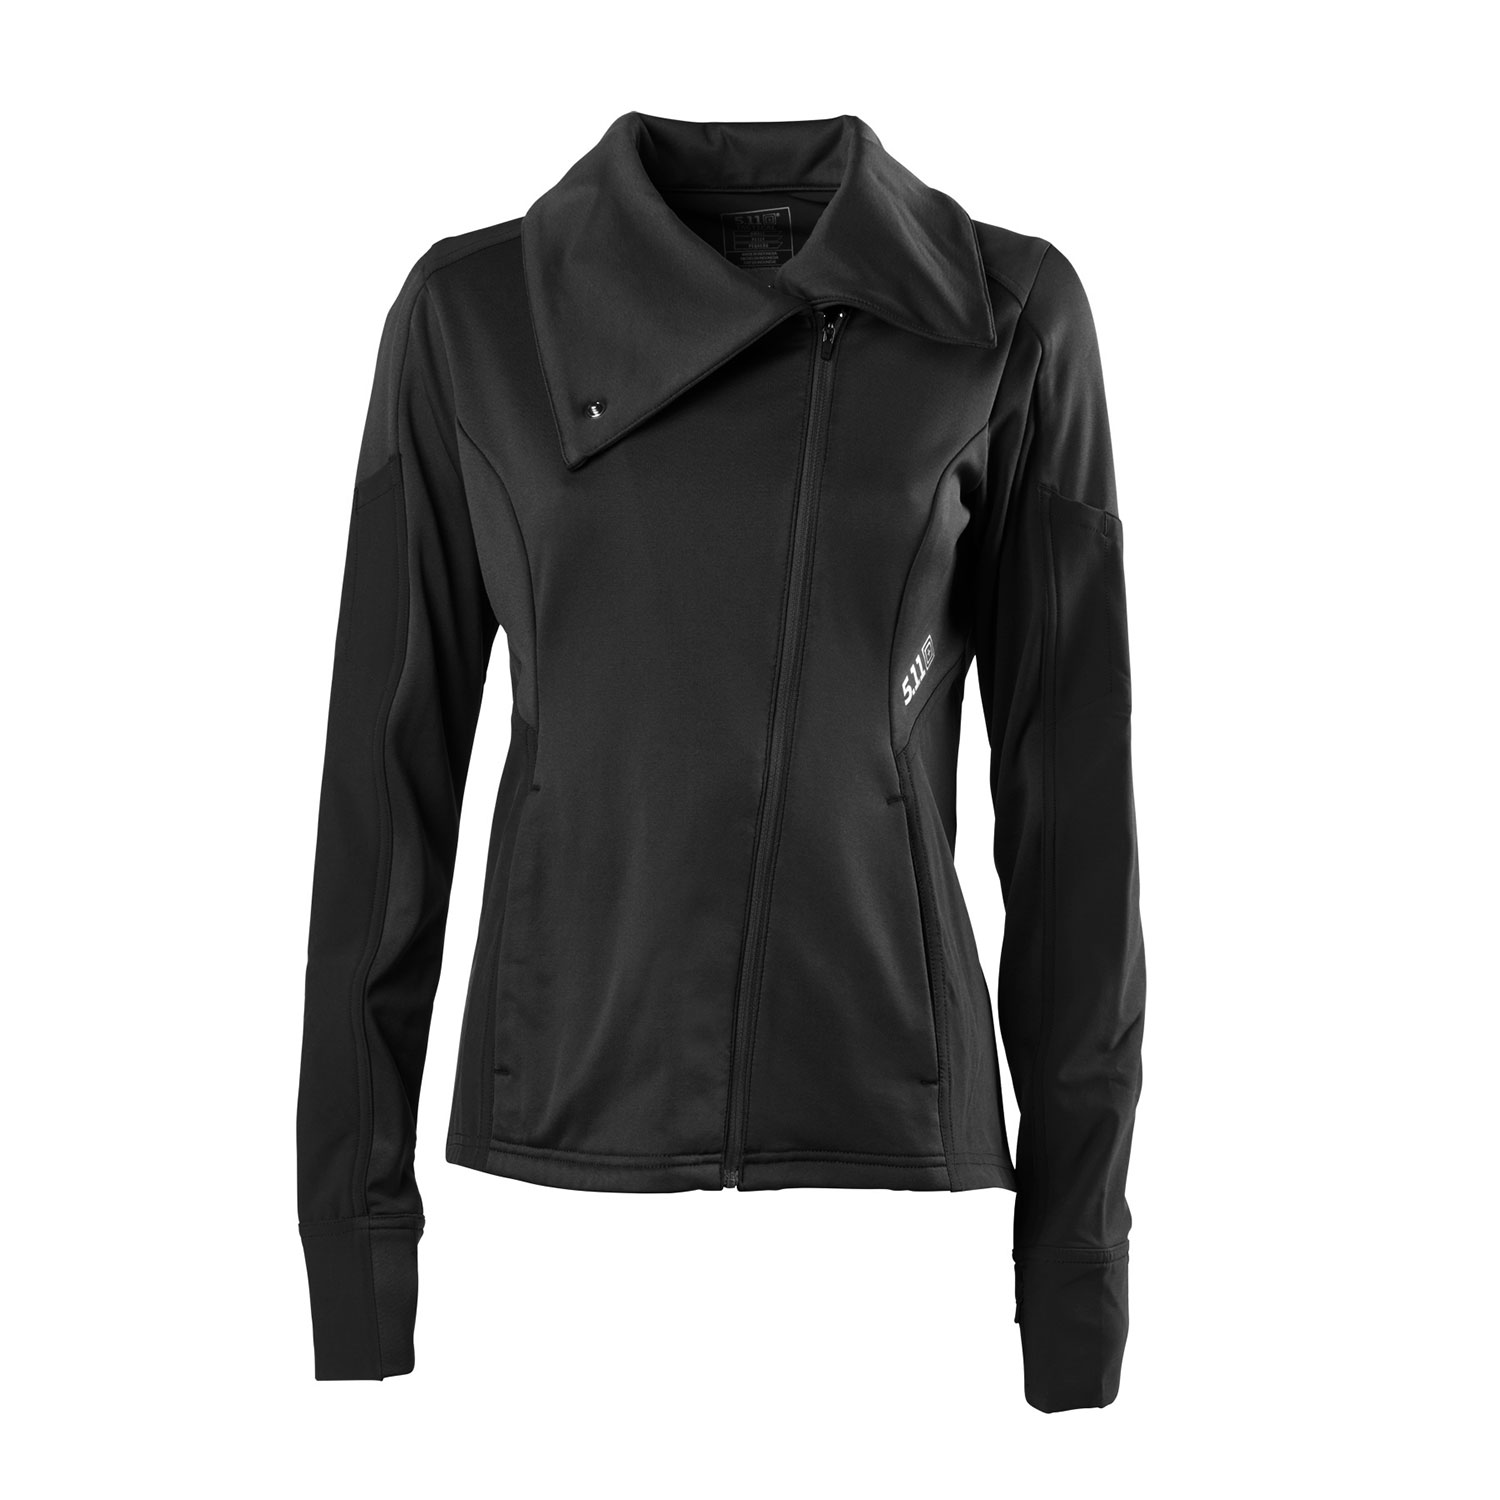 5.11 Women's Kinetic Full-Zip Jacket